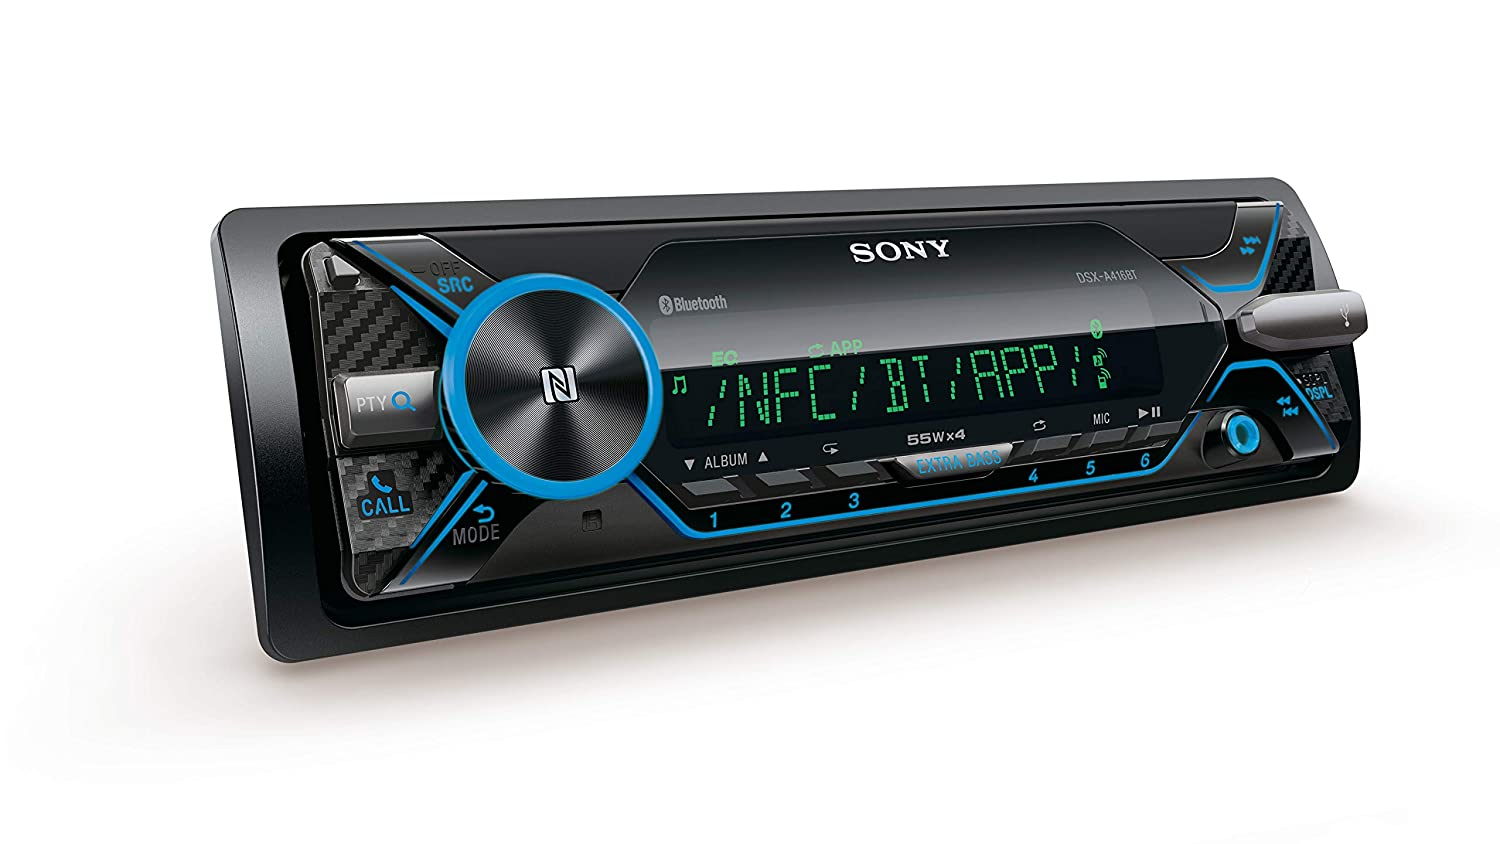 Sony DSX-A416BT Car radio With Dual Bluetooth, NFC, USB and AUX connection and Apple iPod/ iPhone Control, 35000 Colours and Handsfree - Multi-Colour DSXA416BT.EUR